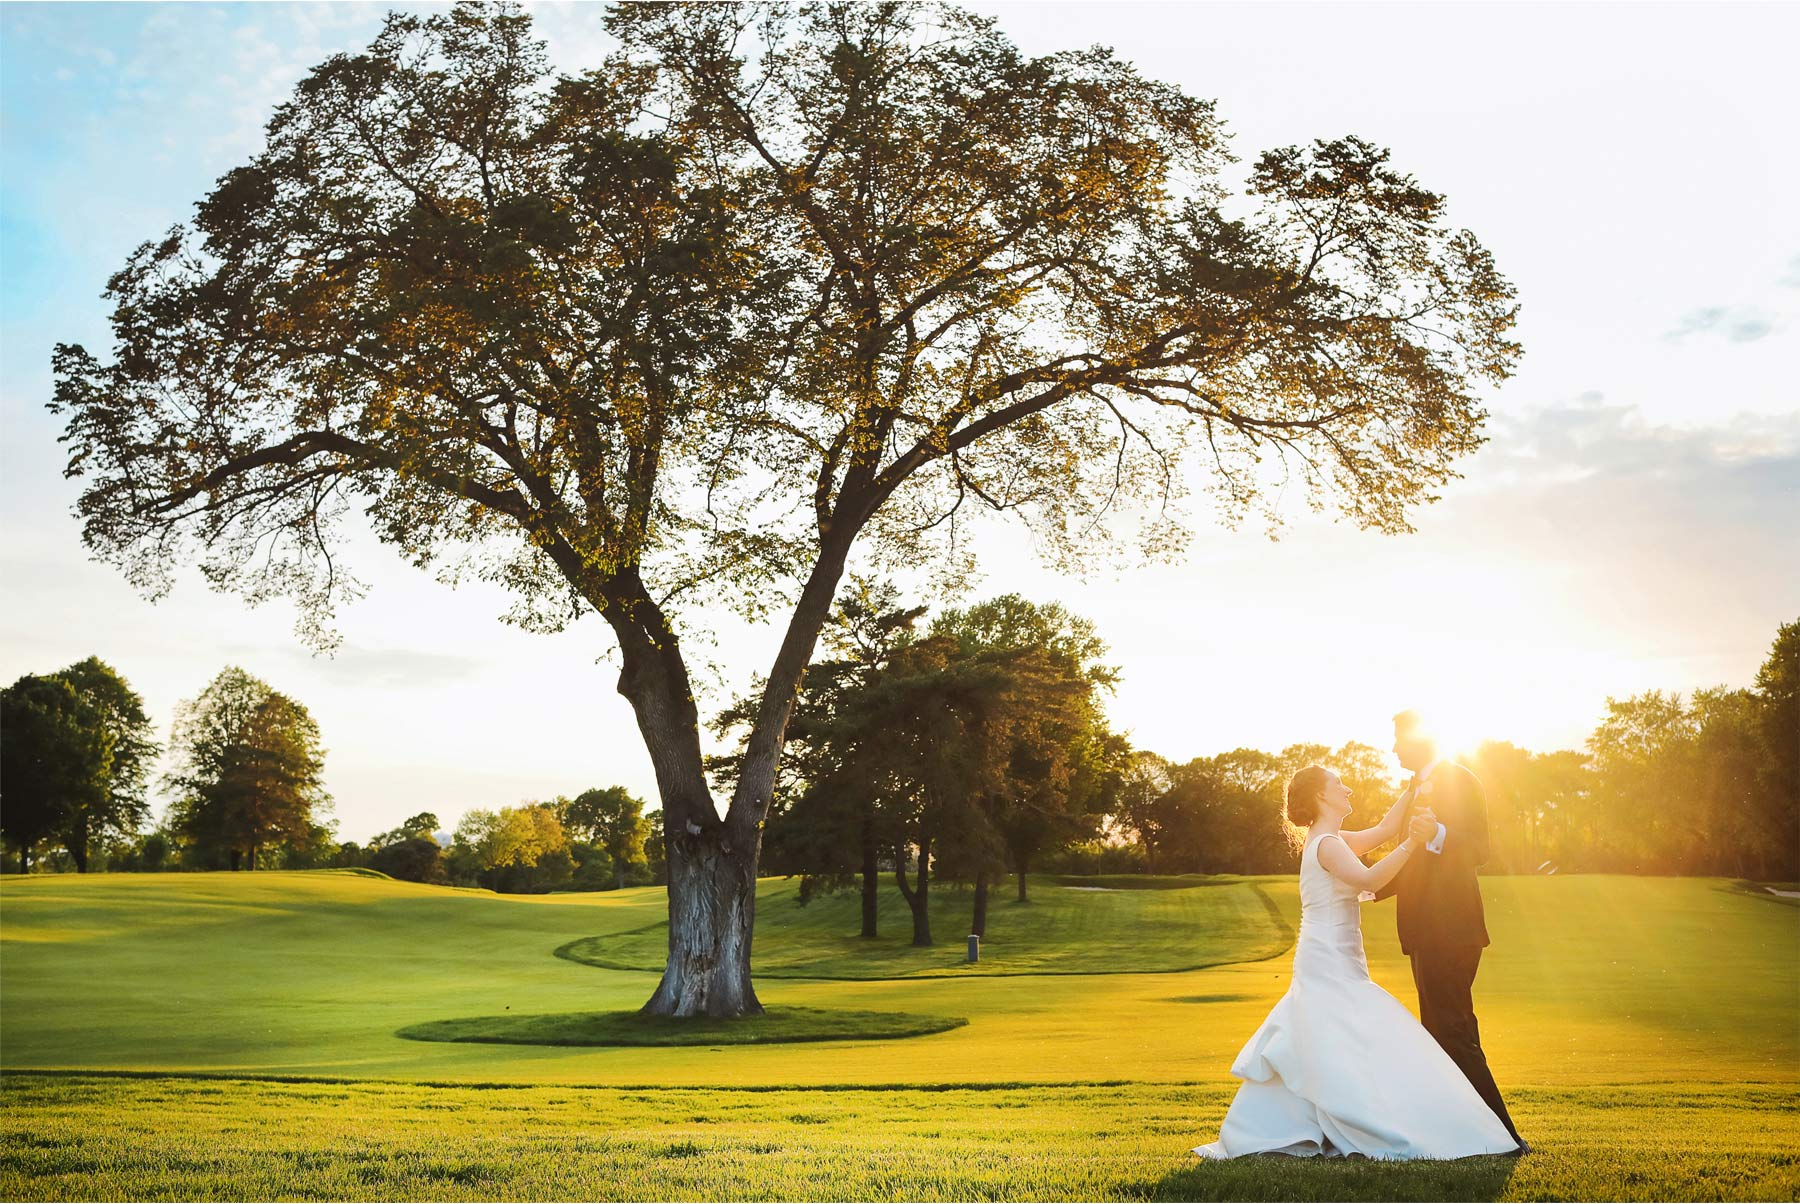 14-Minneapolis-Minnesota-Wedding-Andrew-Vick-Photography-Minikahda-Country-Club-Outdoor-Summer-Bride-Groom-Golf-Course-Golden-Hour-Ashton-and-Kevin.jpg